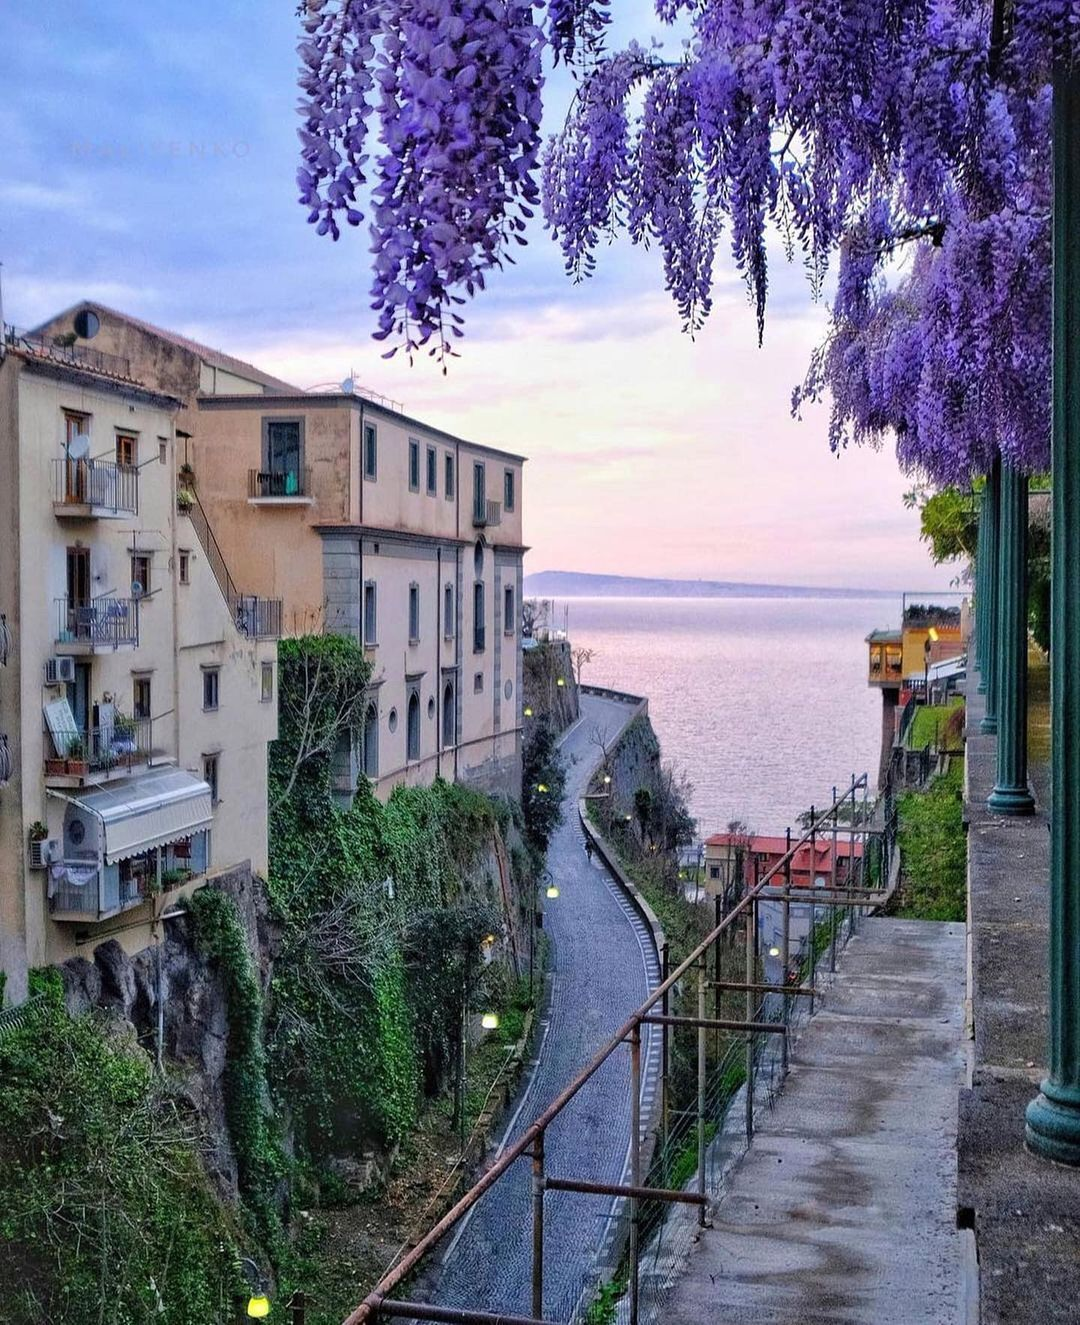 Answers about Sorrento